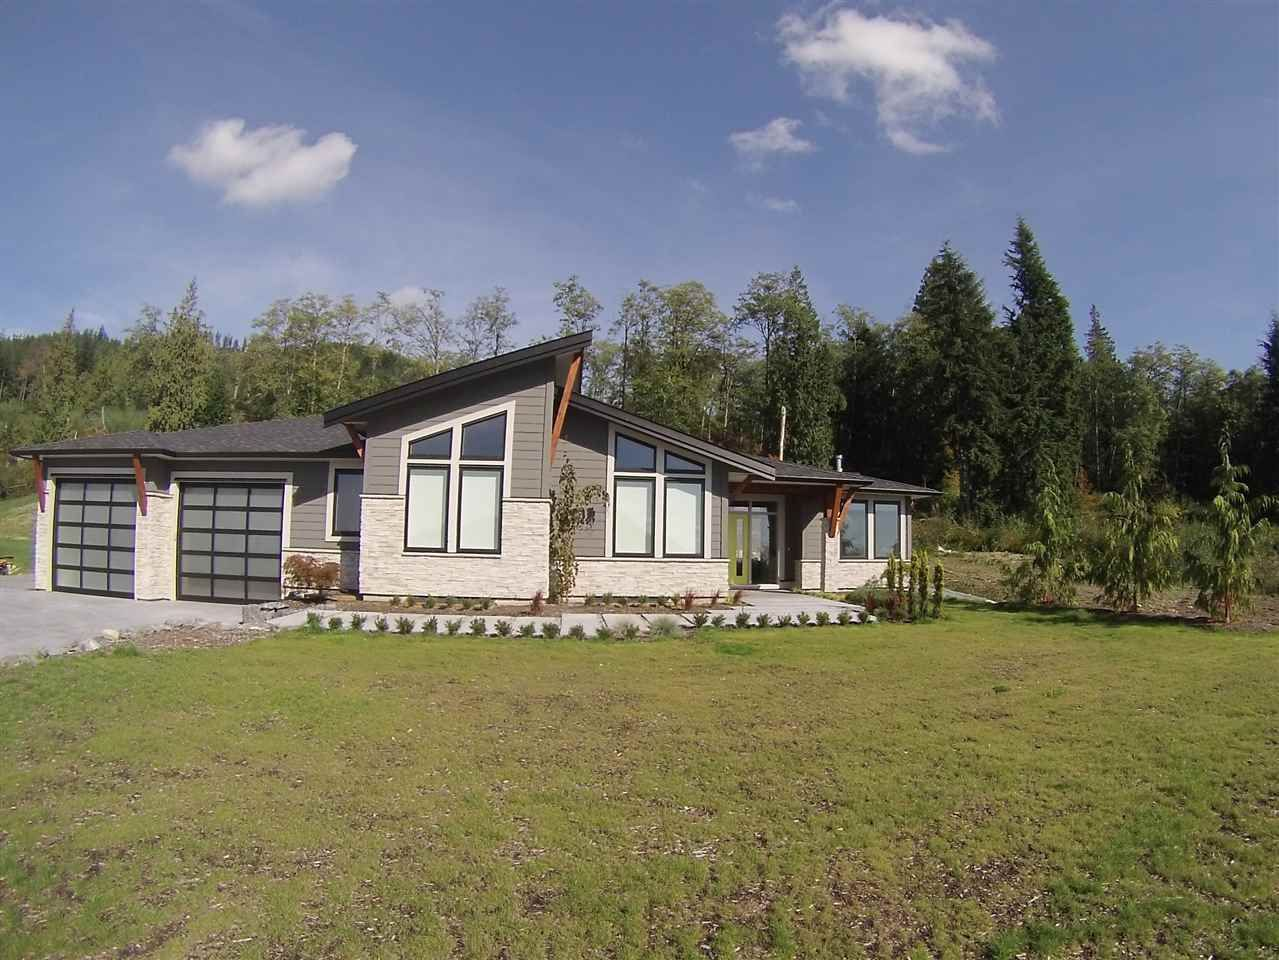 """Main Photo: 3 37885 BAKSTAD Road in Abbotsford: Sumas Mountain House for sale in """"ROCK CLIFF PARK"""" : MLS®# R2000942"""